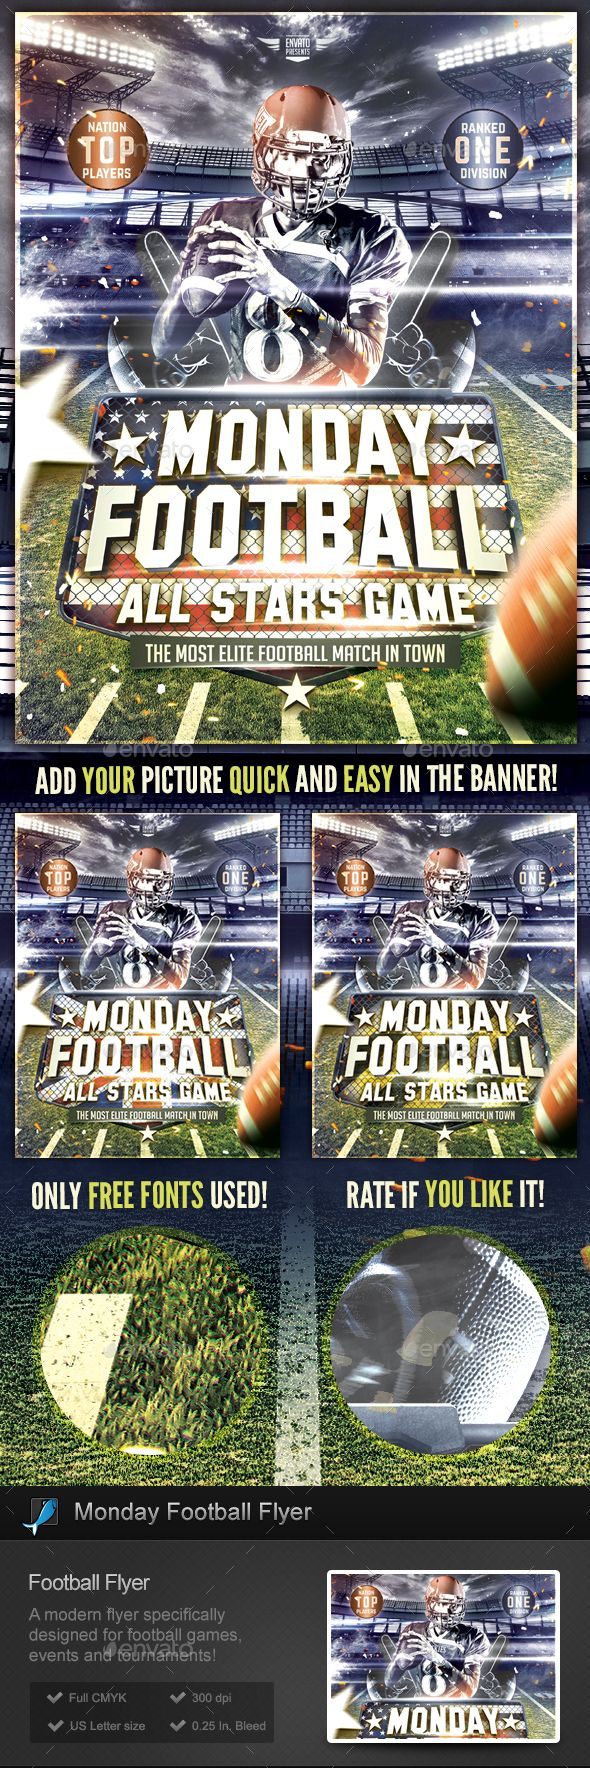 Monday #Football #Flyer Template - Sports #Events Download here:  https://graphicriver.net/item/monday-football-flyer-template/19557014?ref=alena994